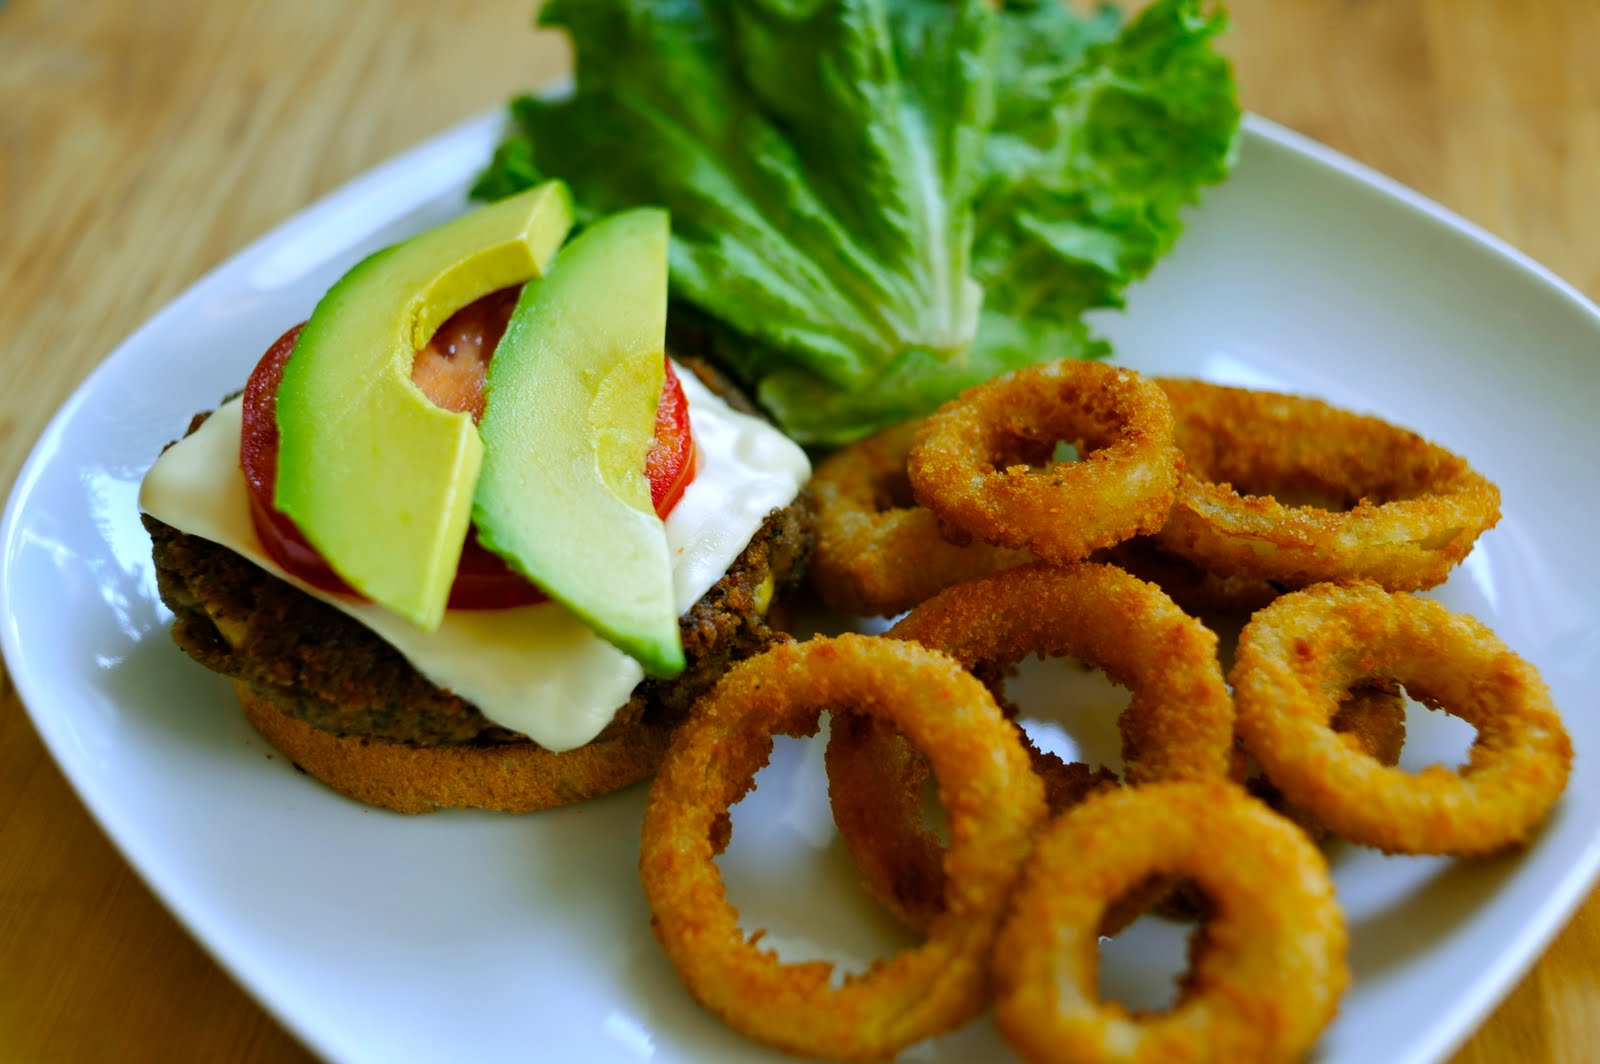 Vegan Good Things: Seitan Black Bean Corn Burgers